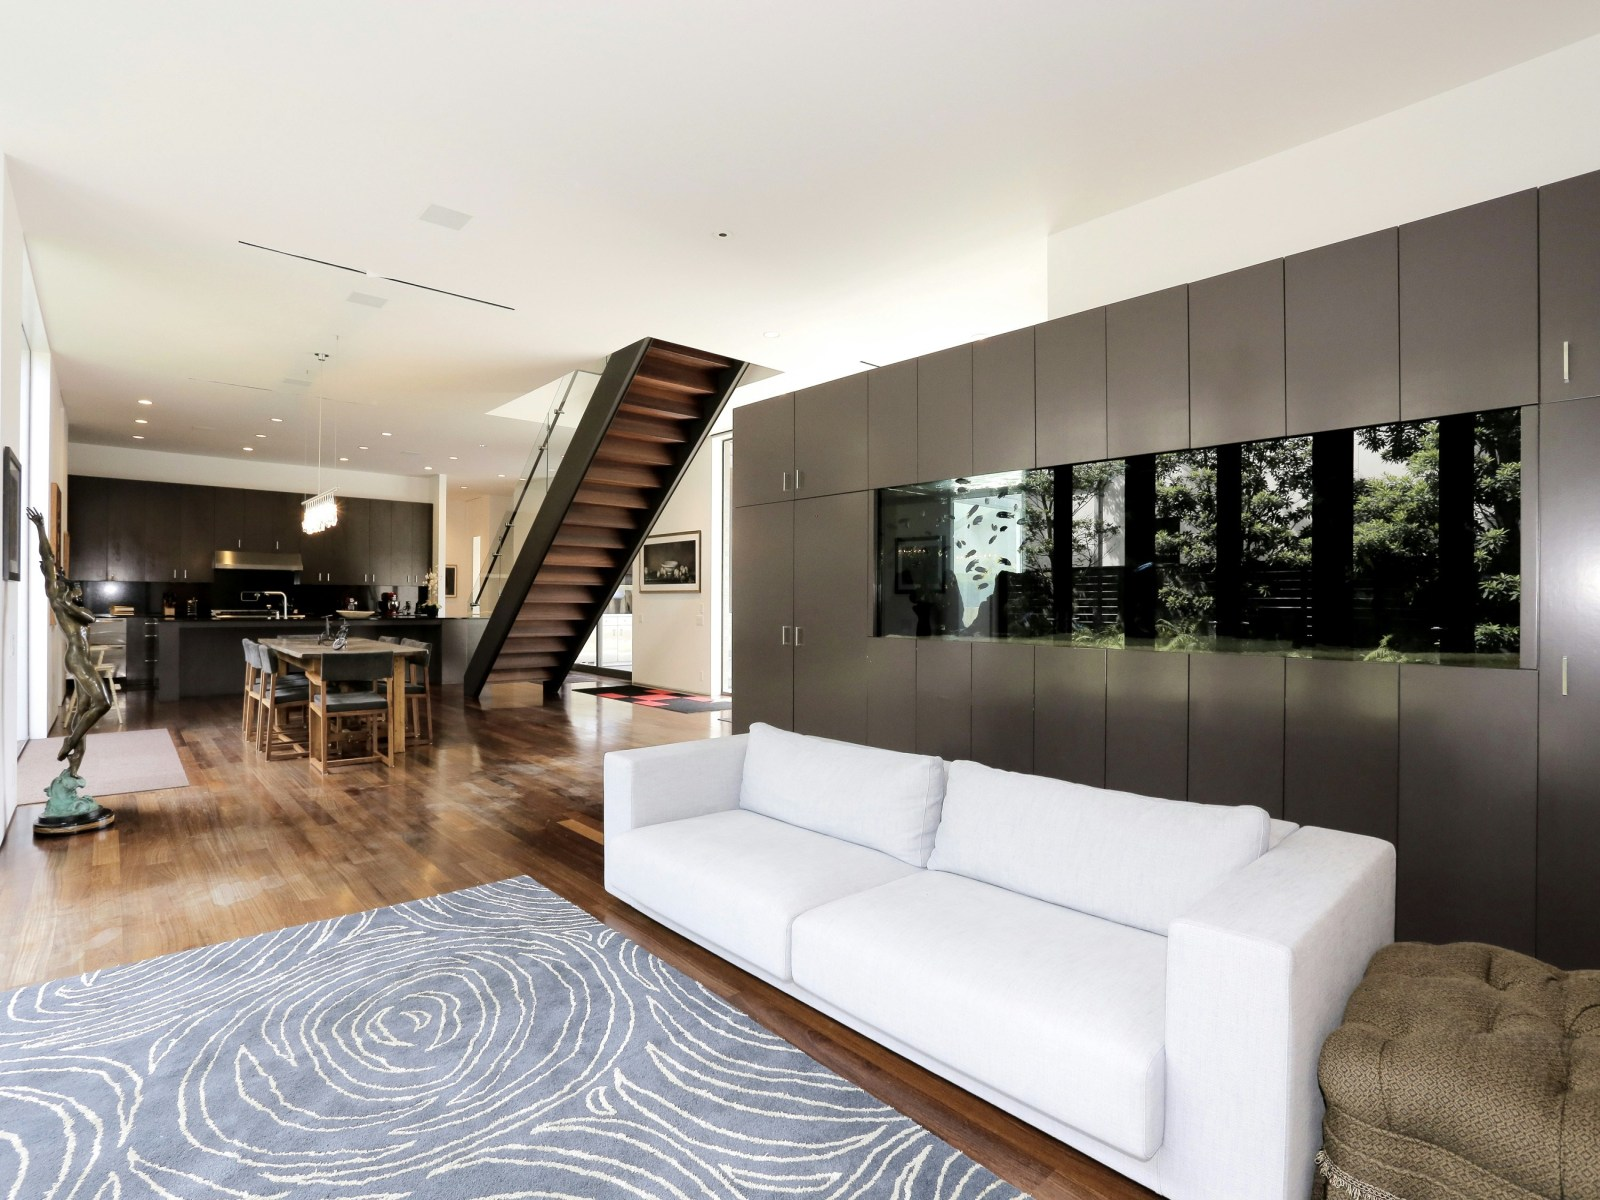 Living Room Aquarium Inspiration - A home with formidable architecture and a light interior